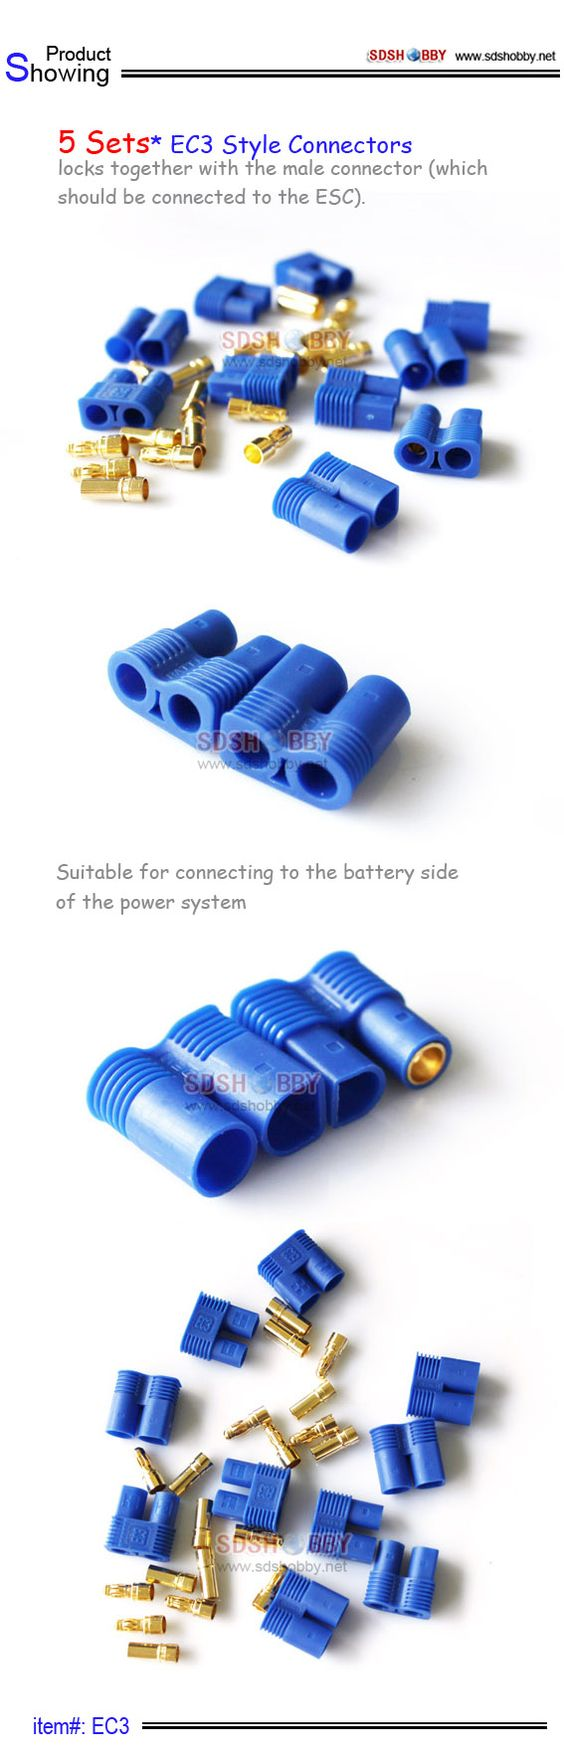 EC3 Style Connectors /5 Sets